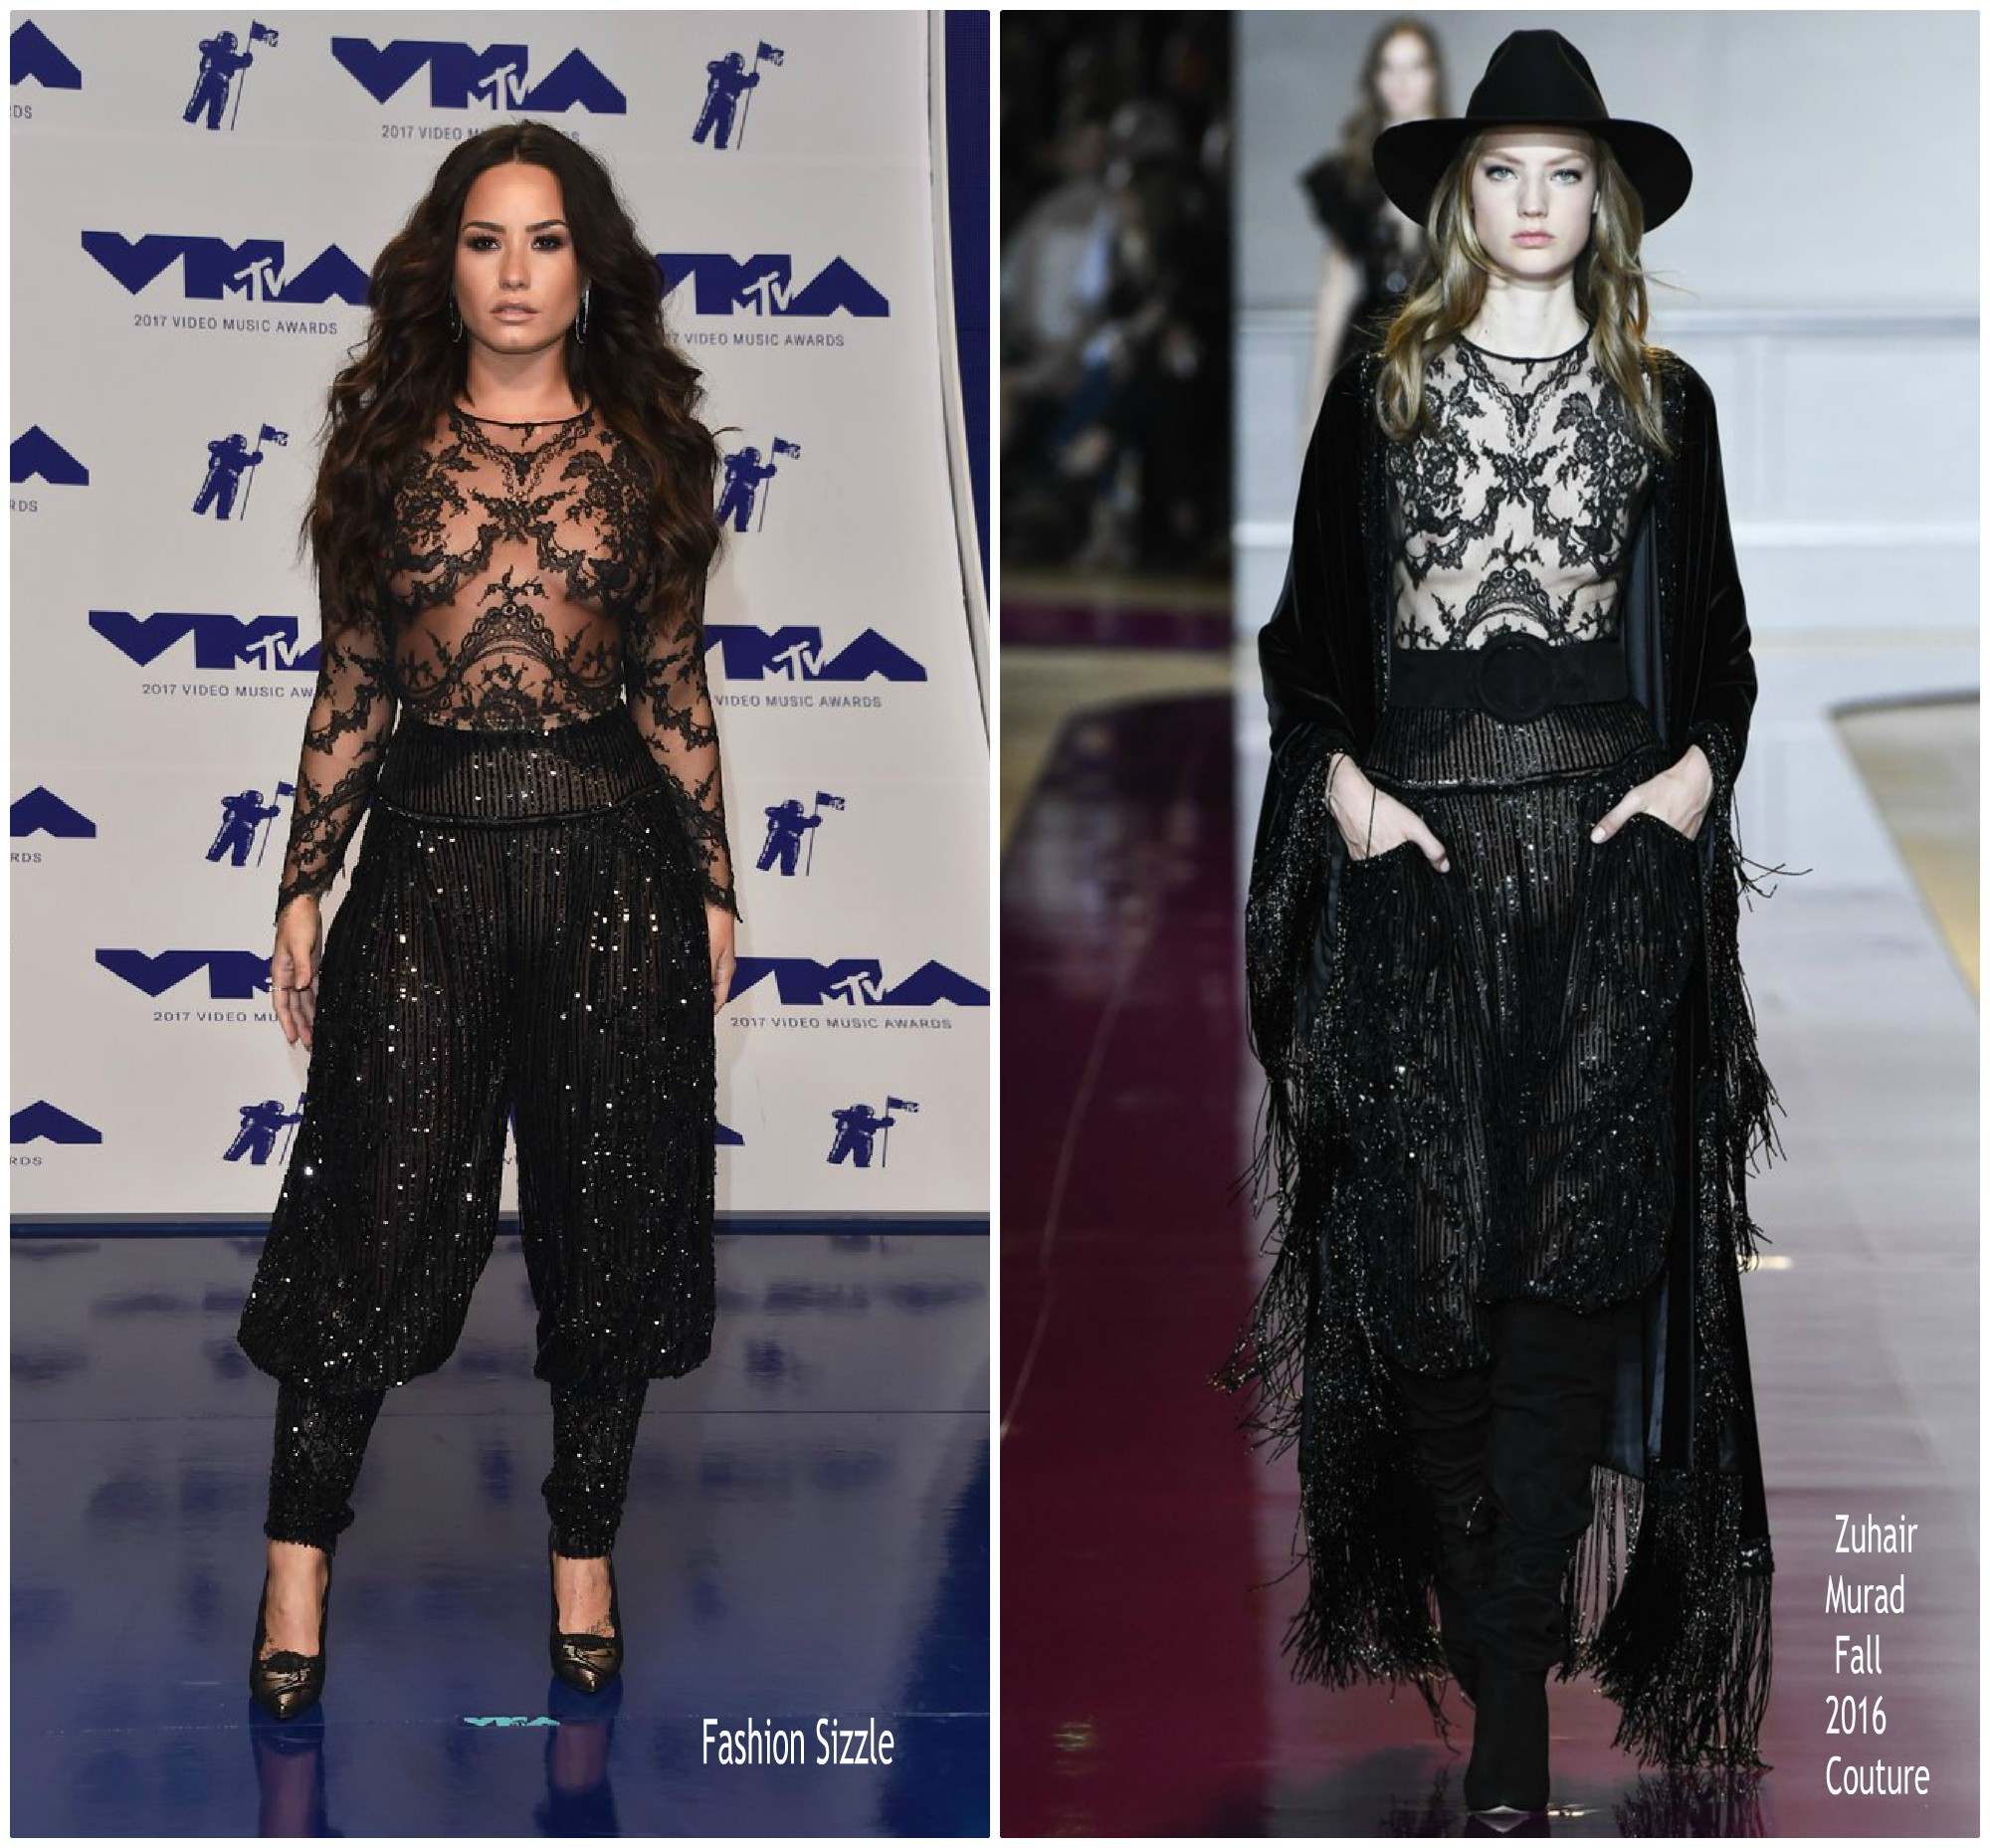 demi-lovato-in-zuhair-murad-mtv-video-music-awards-2017